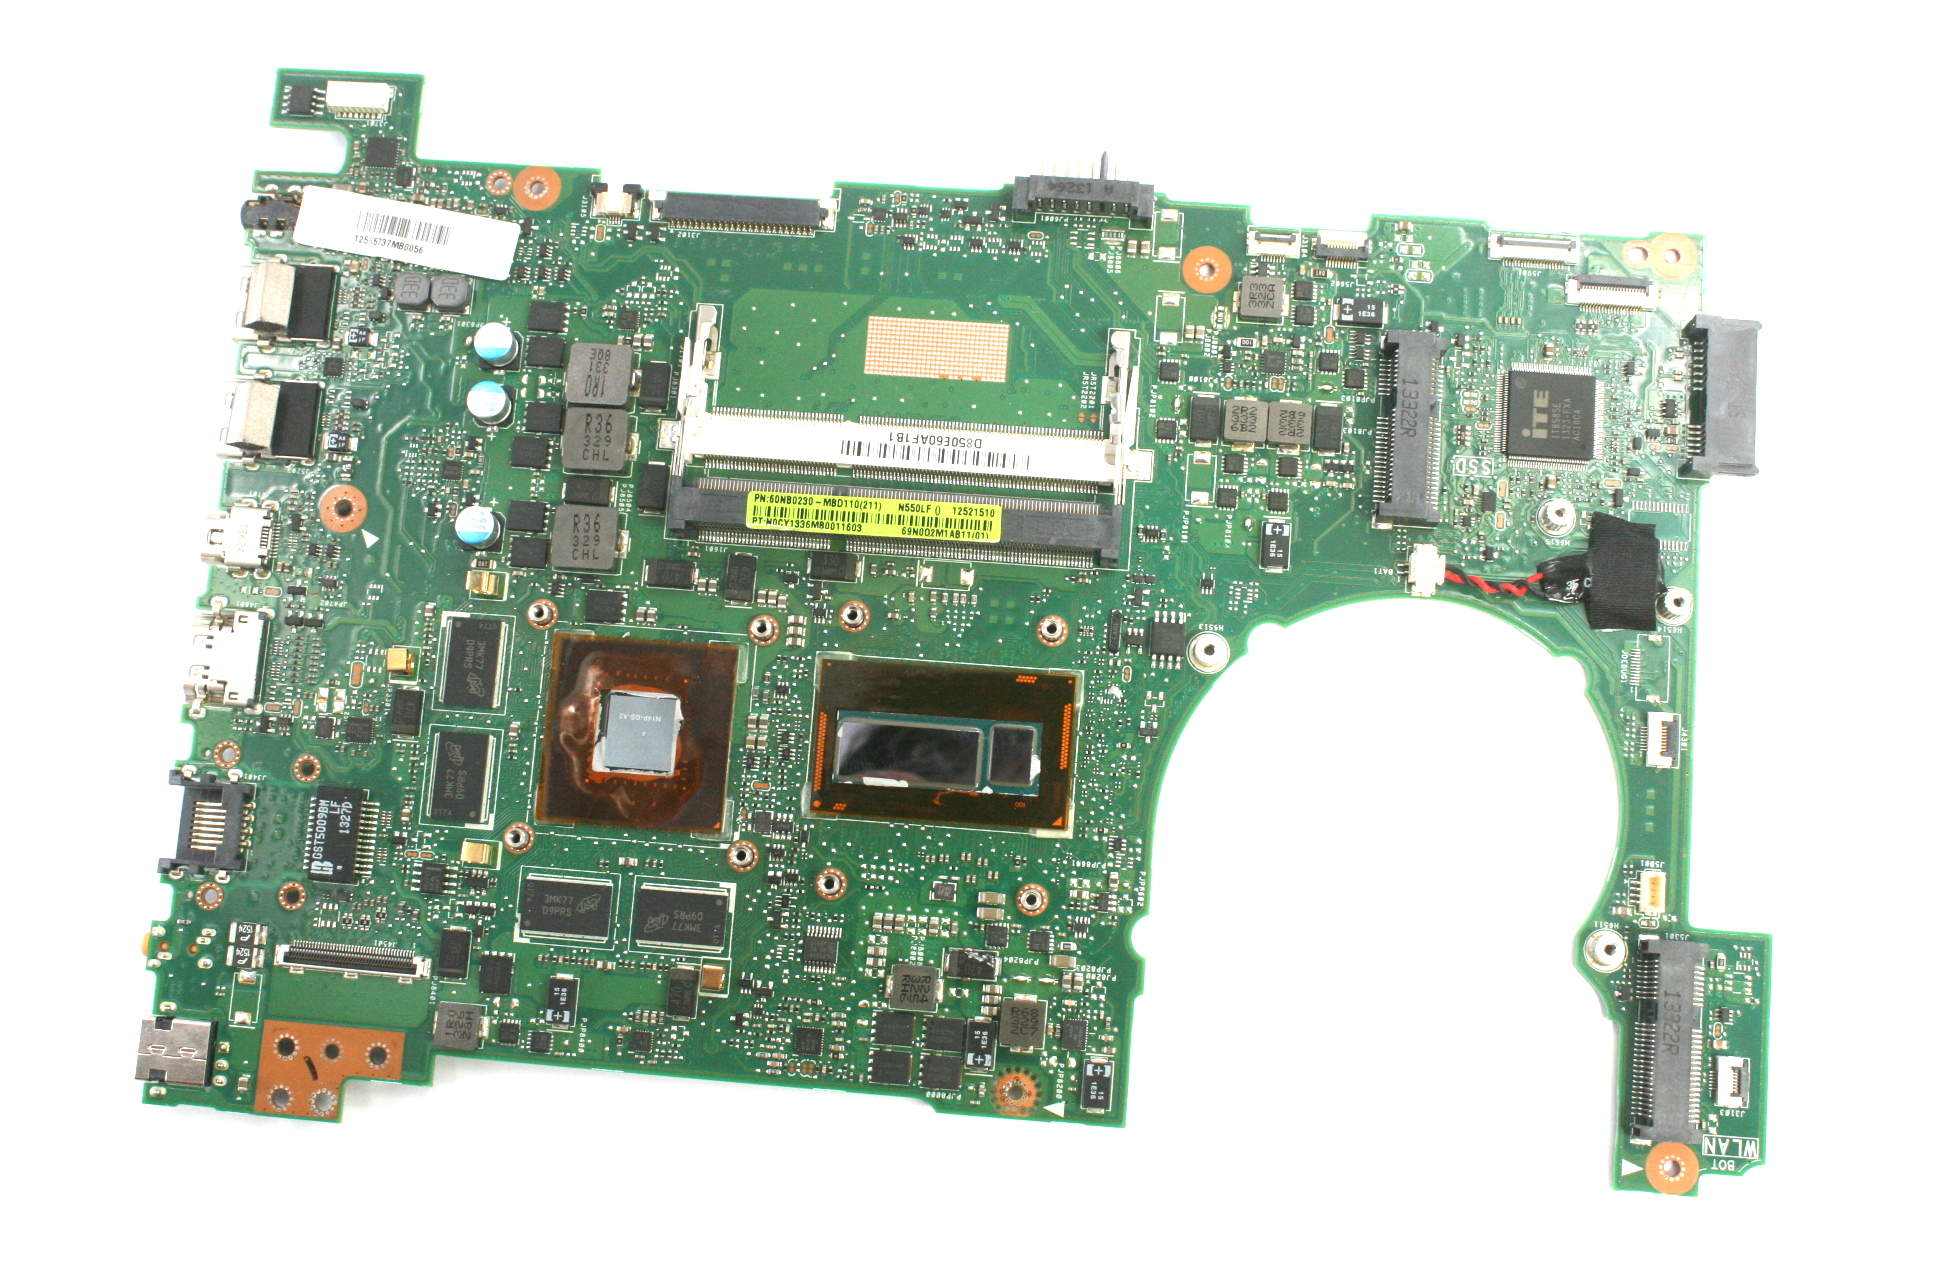 Asus 60NB0230-MBD110 Notebook Motherboard /w Intel i5-4200U(SR170) CPU